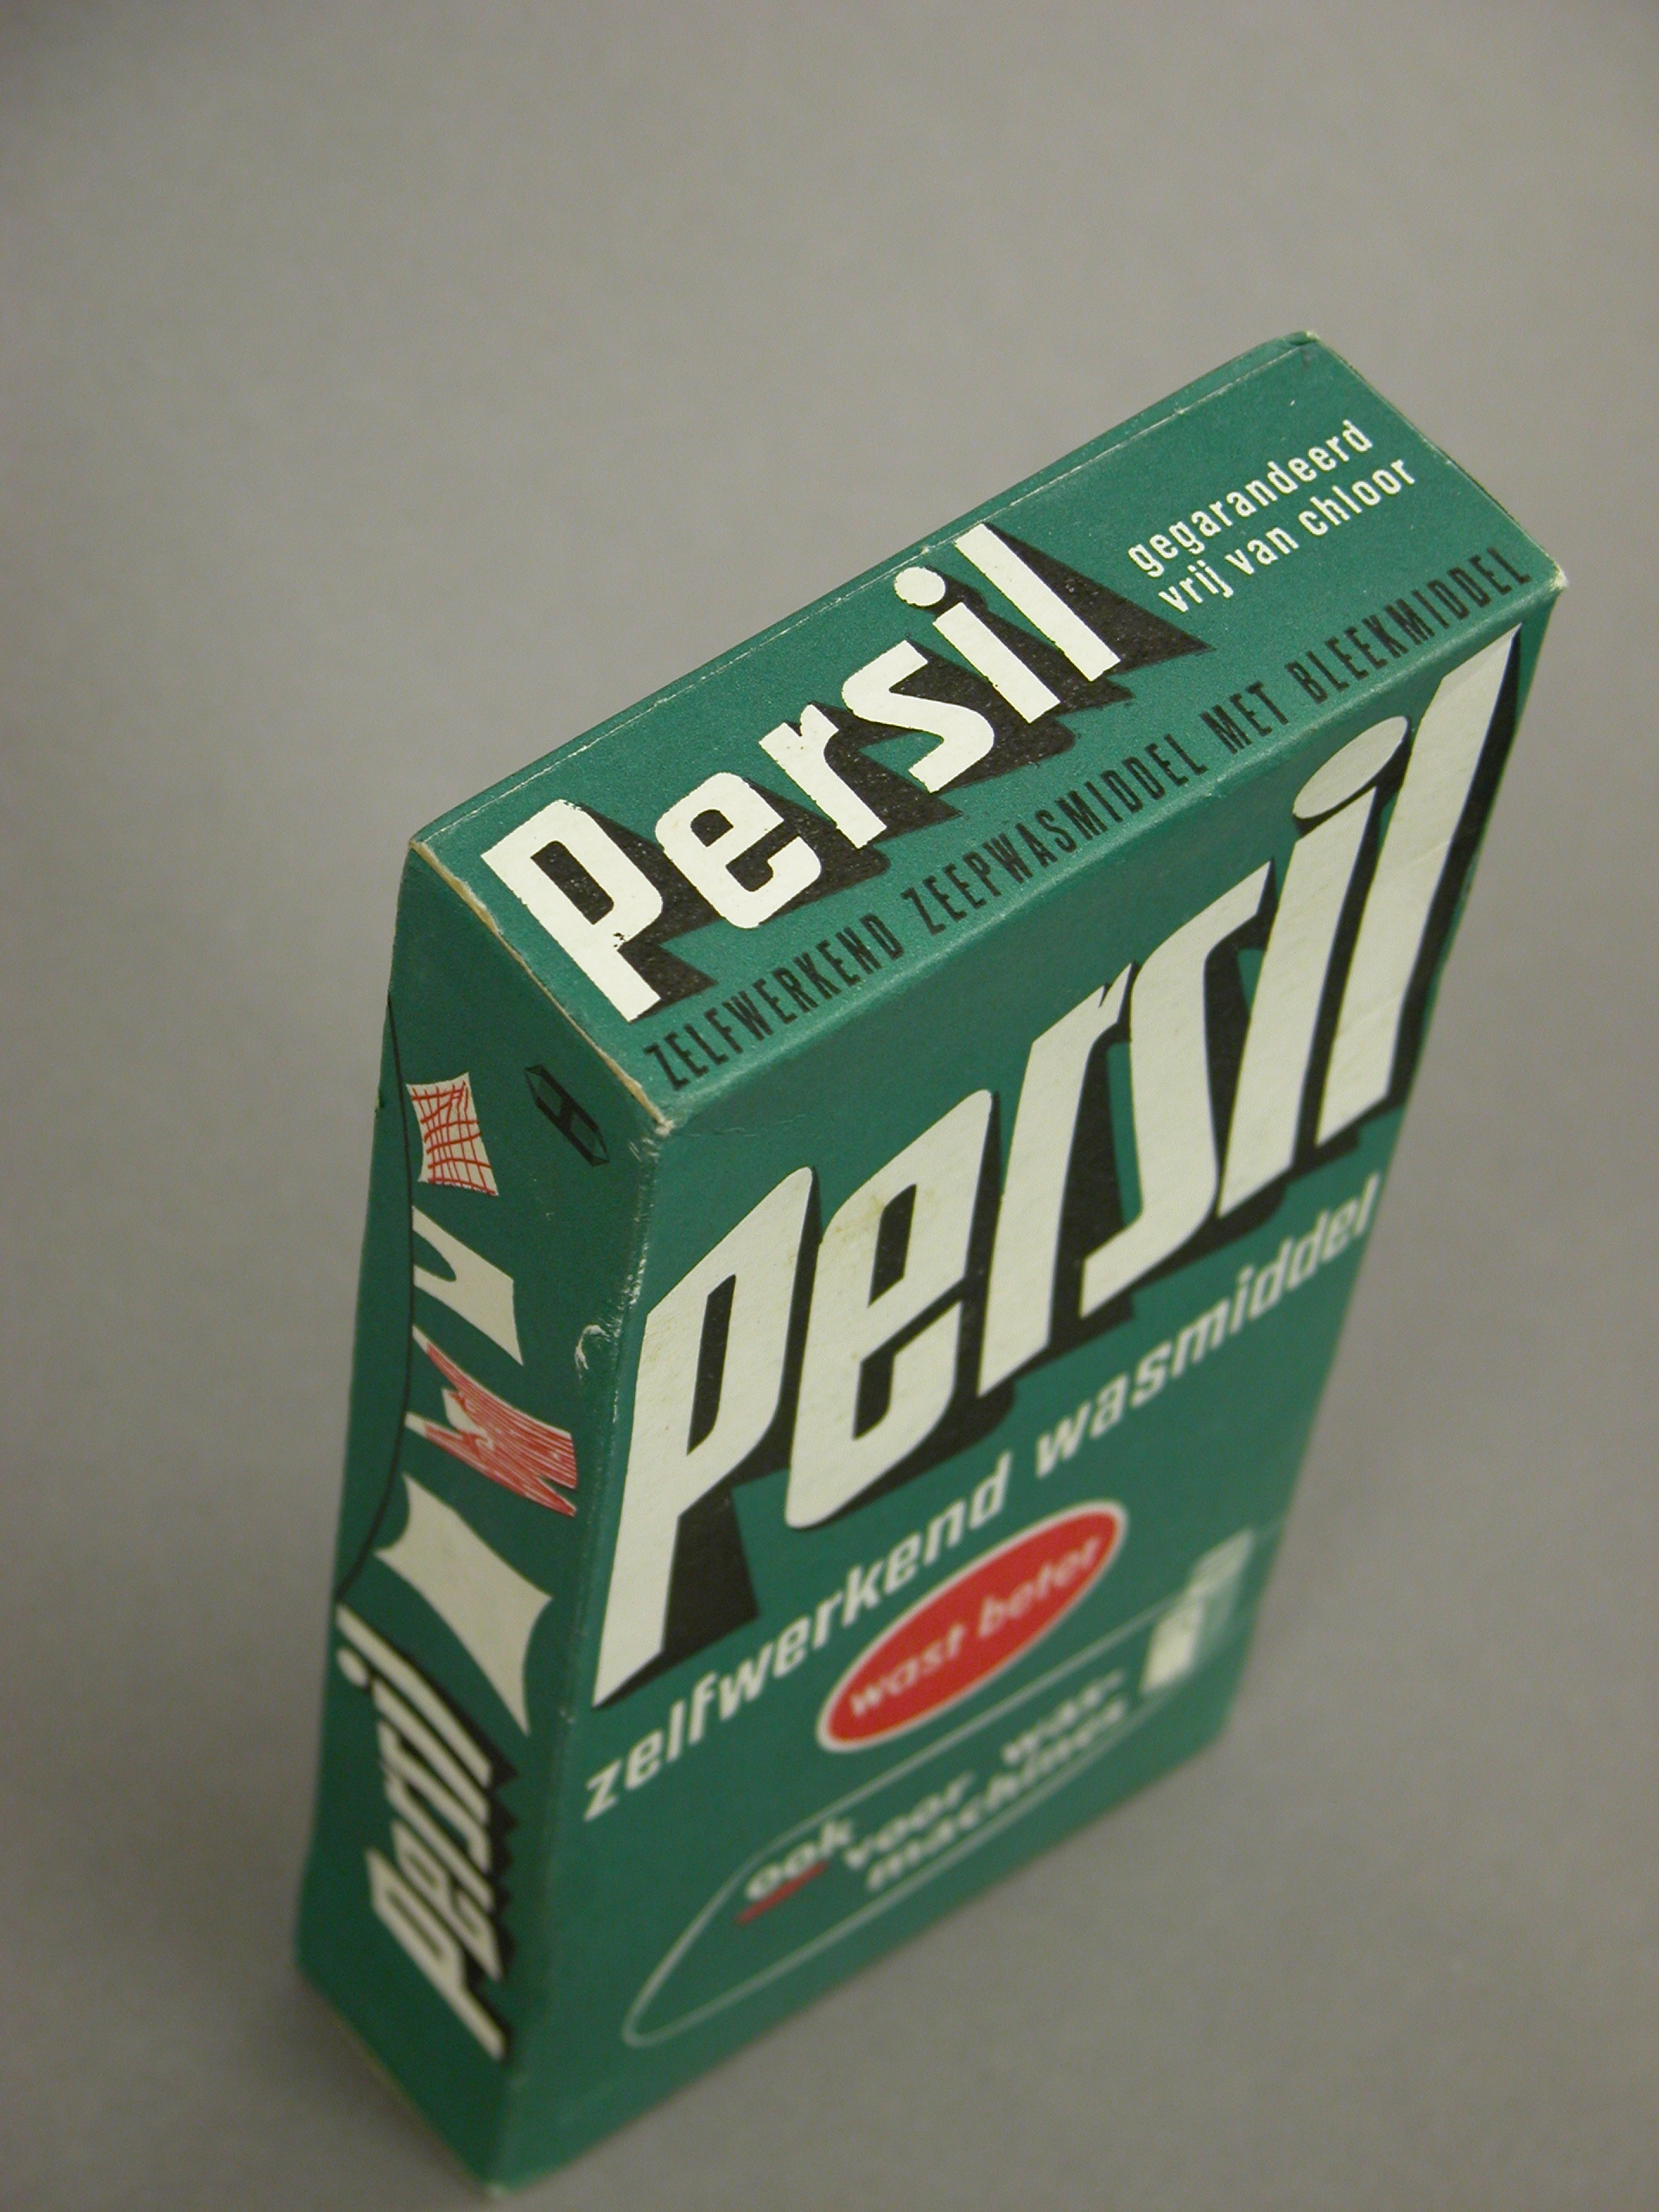 persil soap box old design packaging detergent